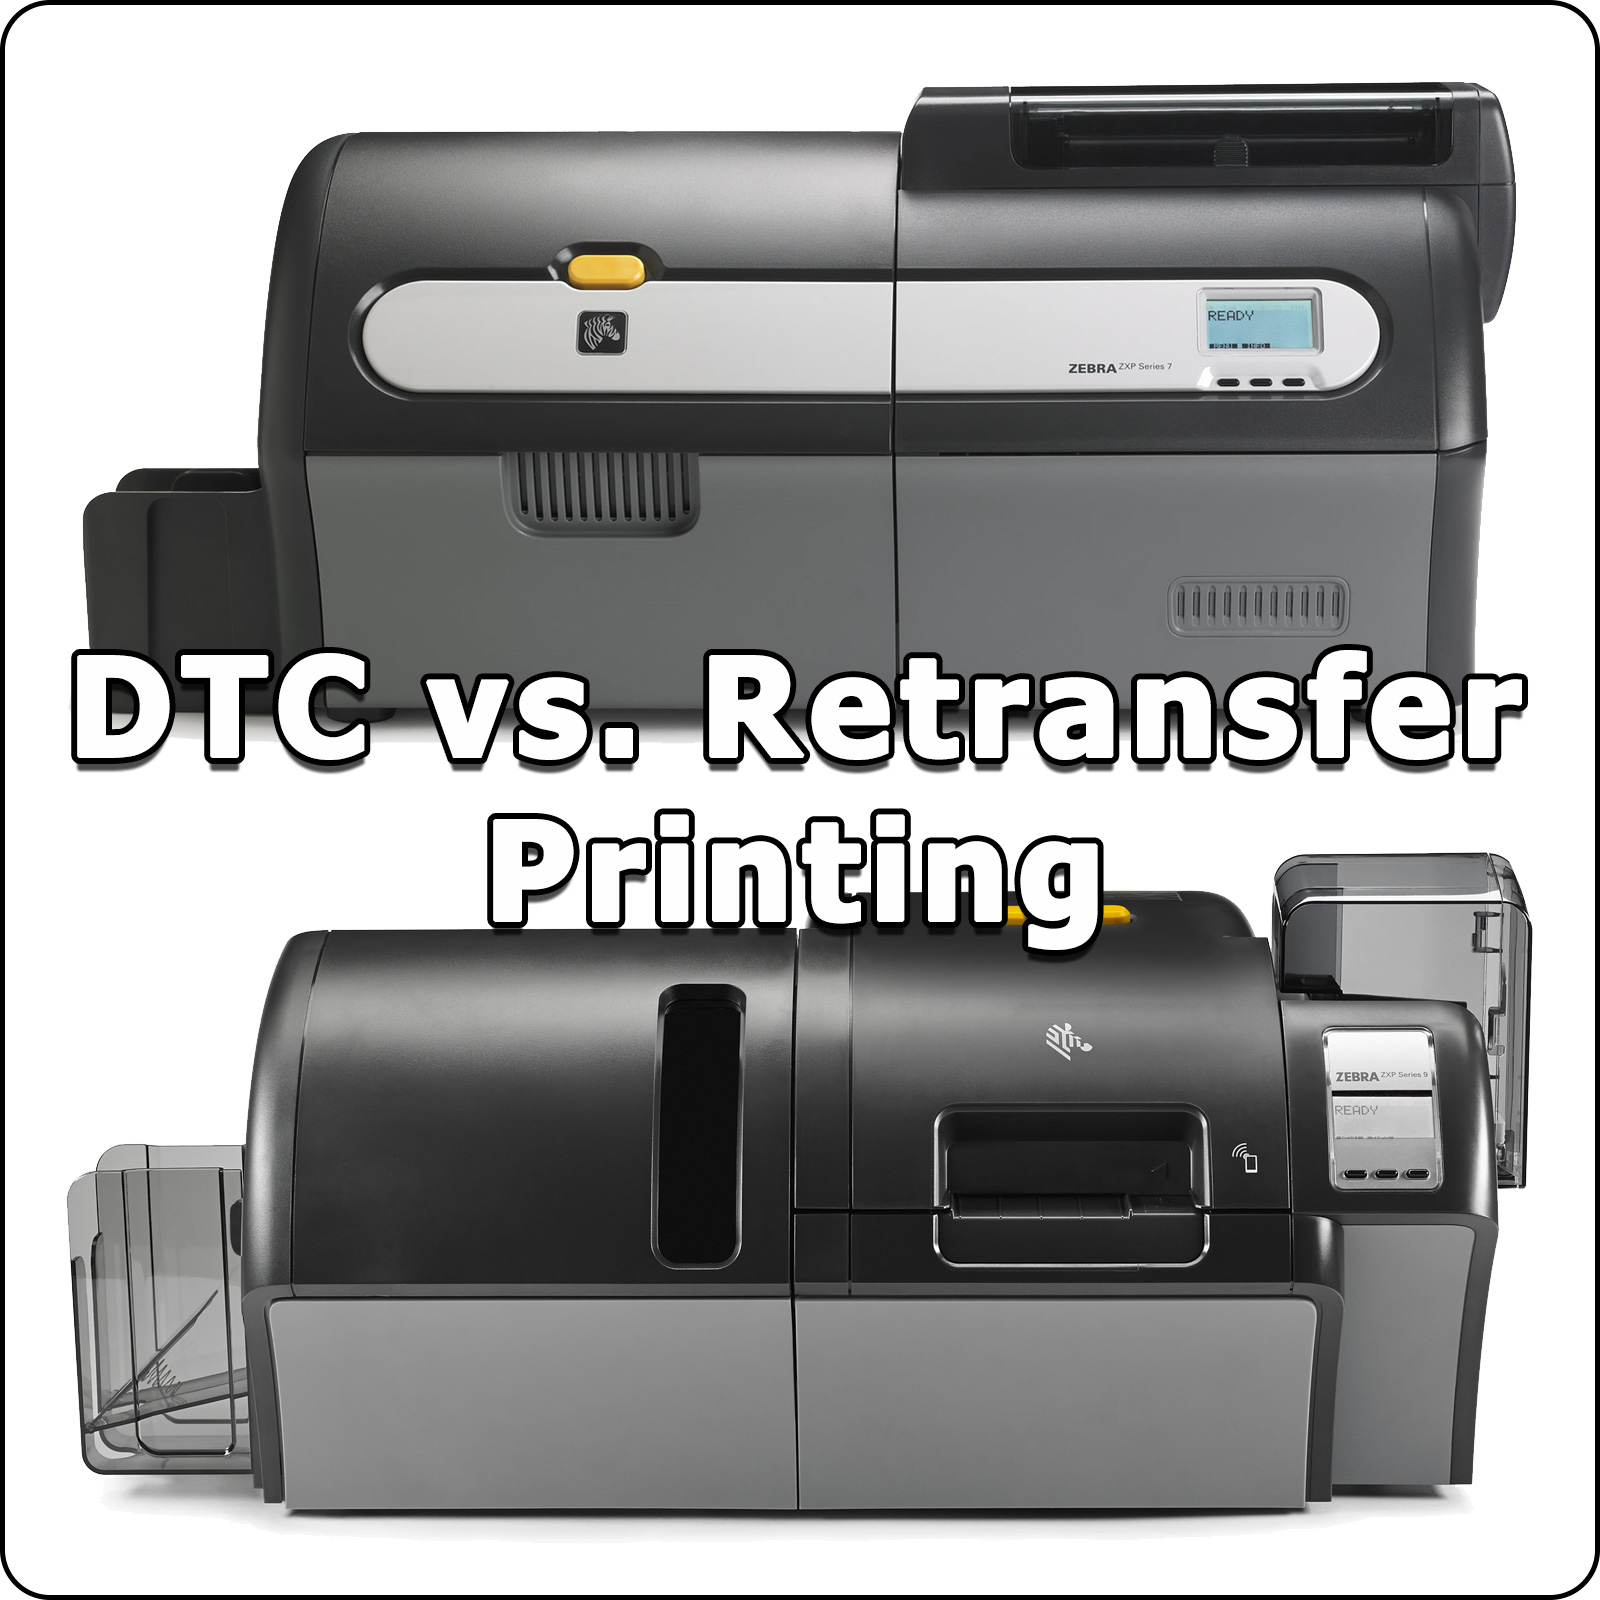 Direct-to-Card or Retransfer: Which Card Printer Is Right for Your Application?